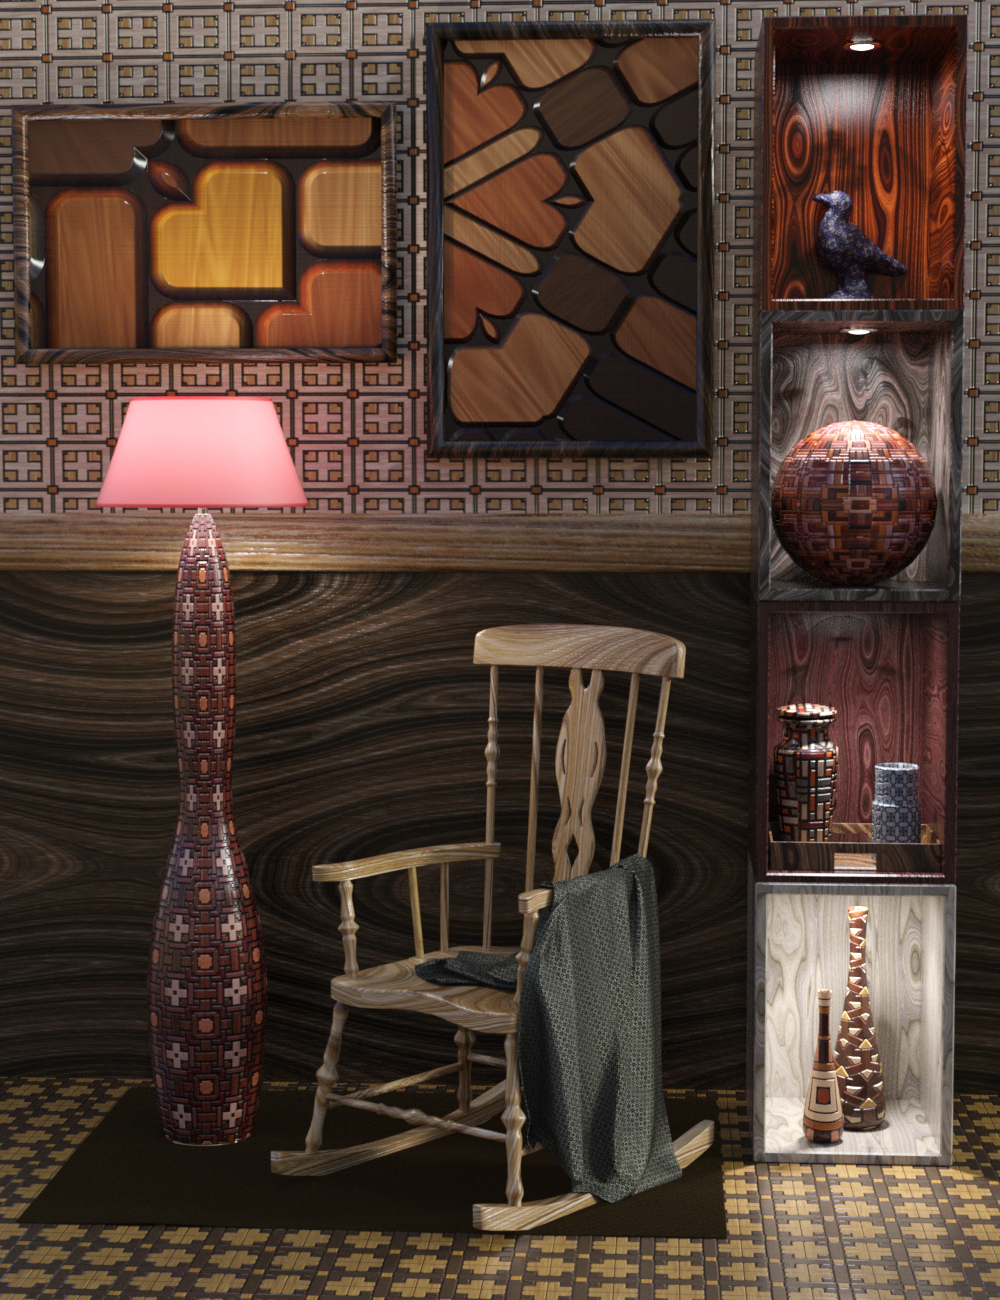 DG Iray Deco Wood Shaders by: IDG DesignsDestinysGarden, 3D Models by Daz 3D